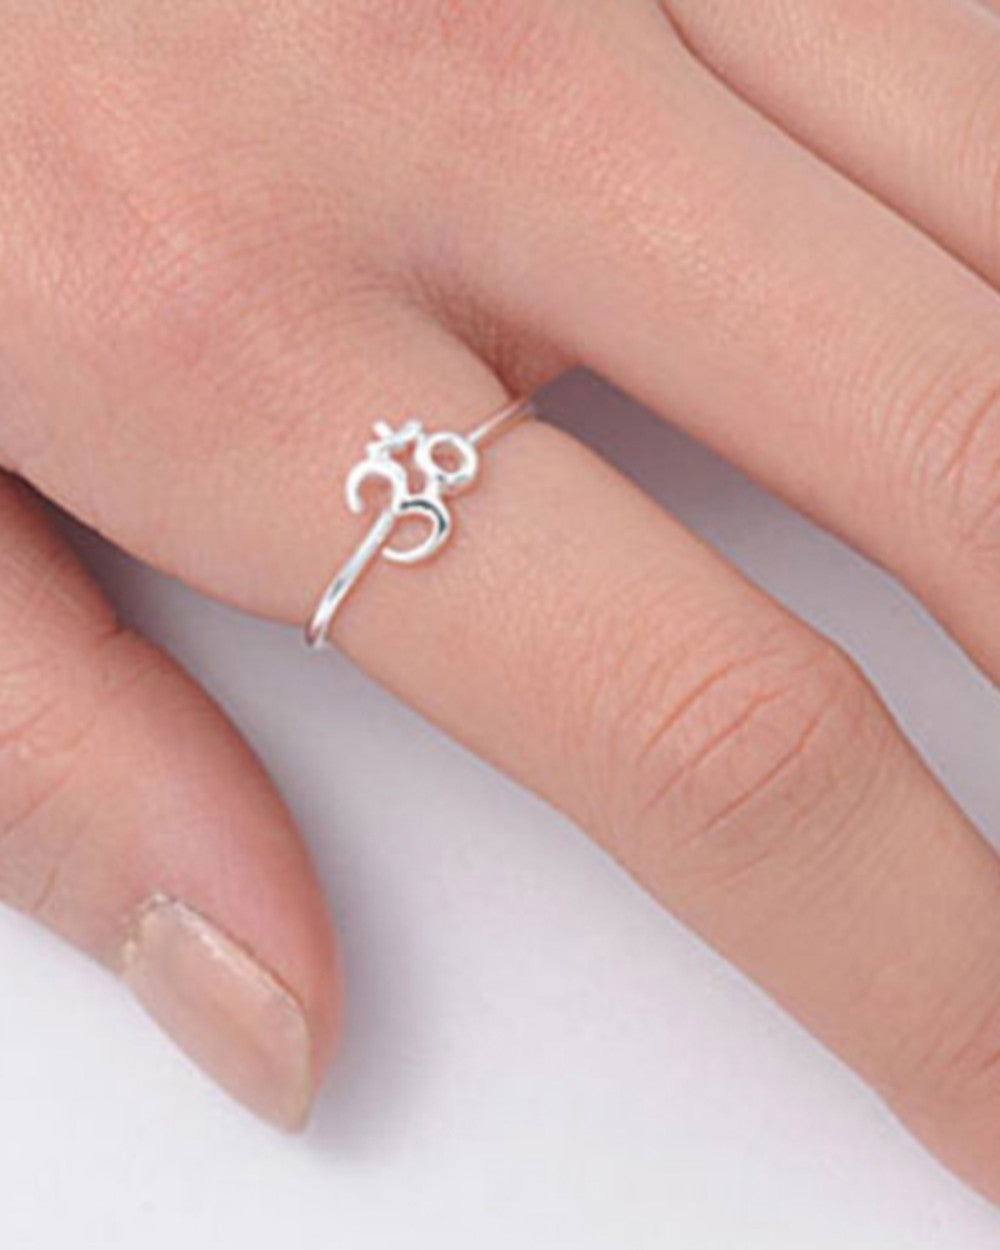 Om Symbol Ring Choice Image - meaning of text symbols